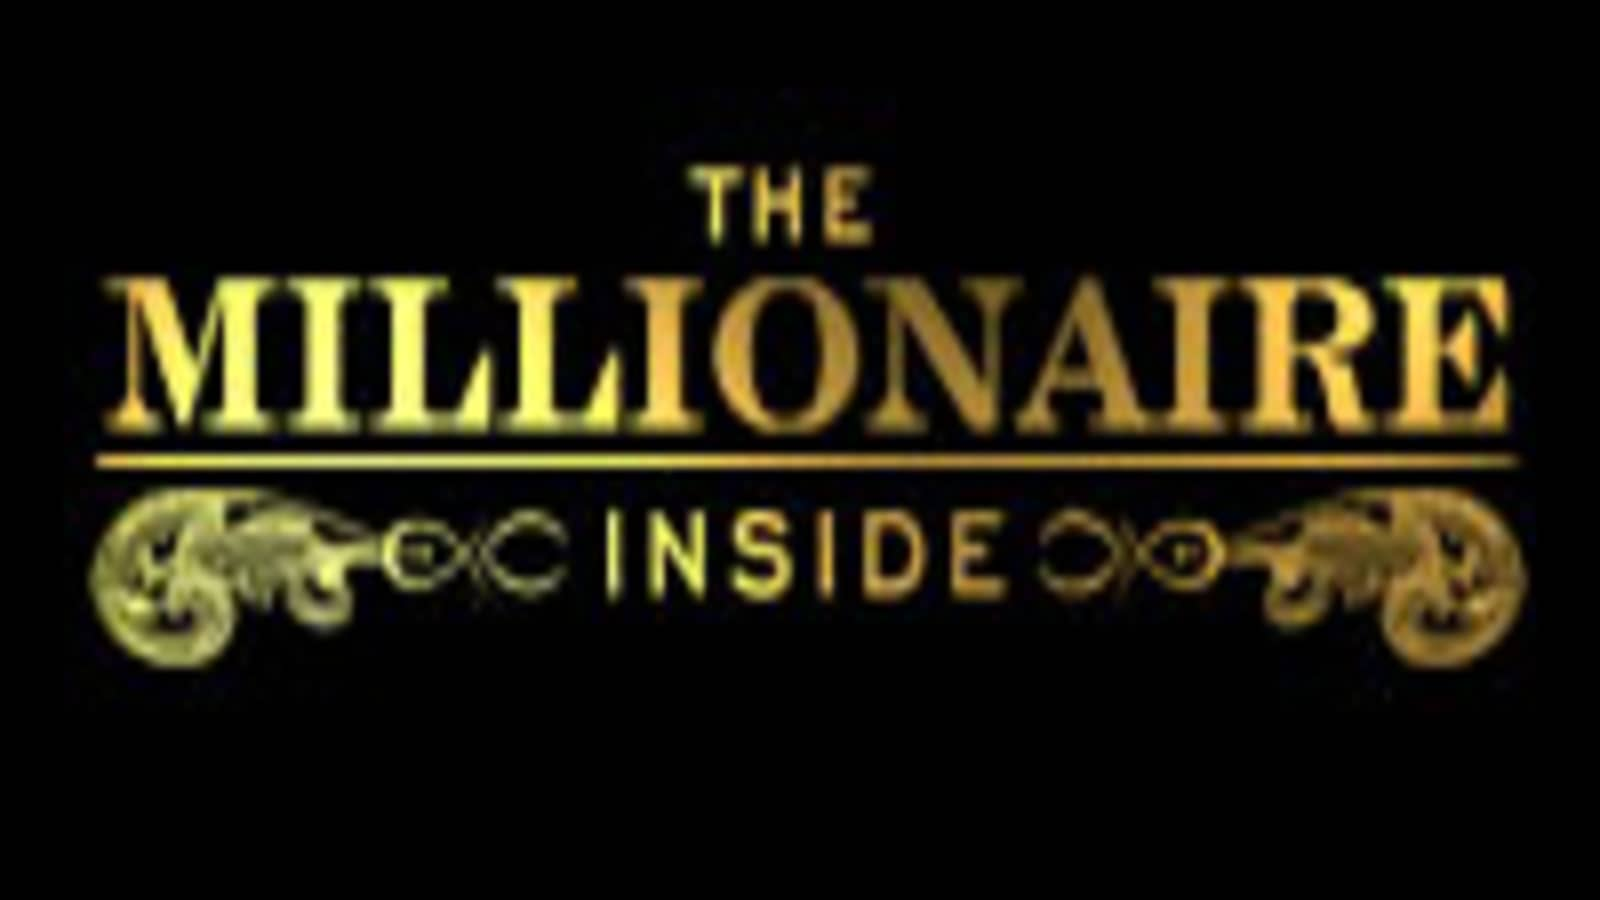 Cnbc S Personal Finance Special The Millionaire Inside Your Guide To Wealth Premieres Saturday April 21st